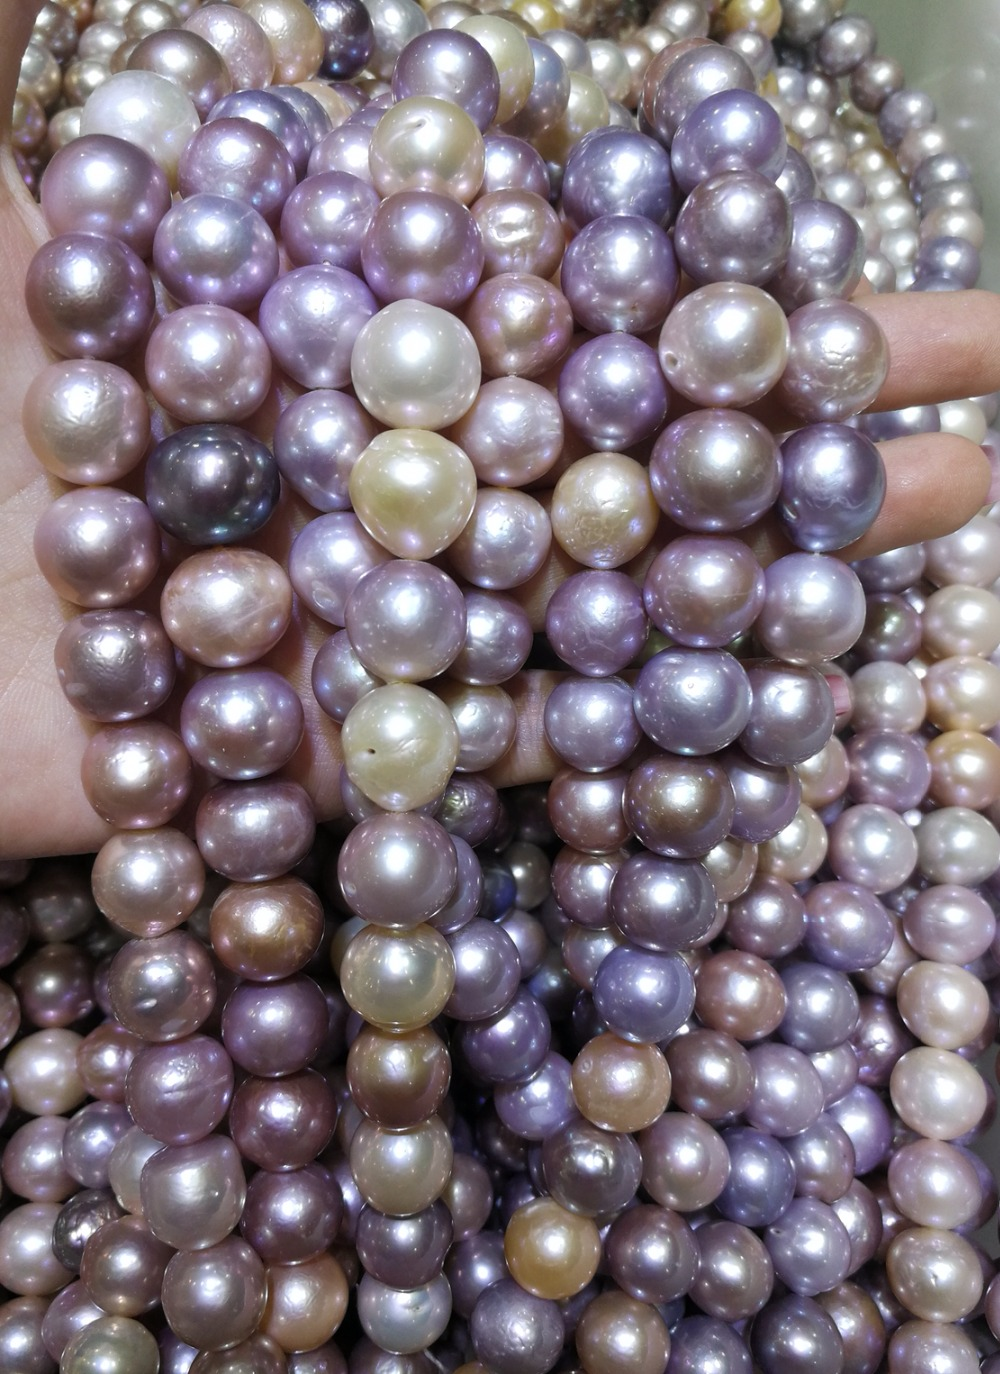 Genuine AA+ Natural Pearl 12-16mm Colorful freshwater pearl HUGE loose beads DIY gift one strands Hole Approx 1mmGenuine AA+ Natural Pearl 12-16mm Colorful freshwater pearl HUGE loose beads DIY gift one strands Hole Approx 1mm